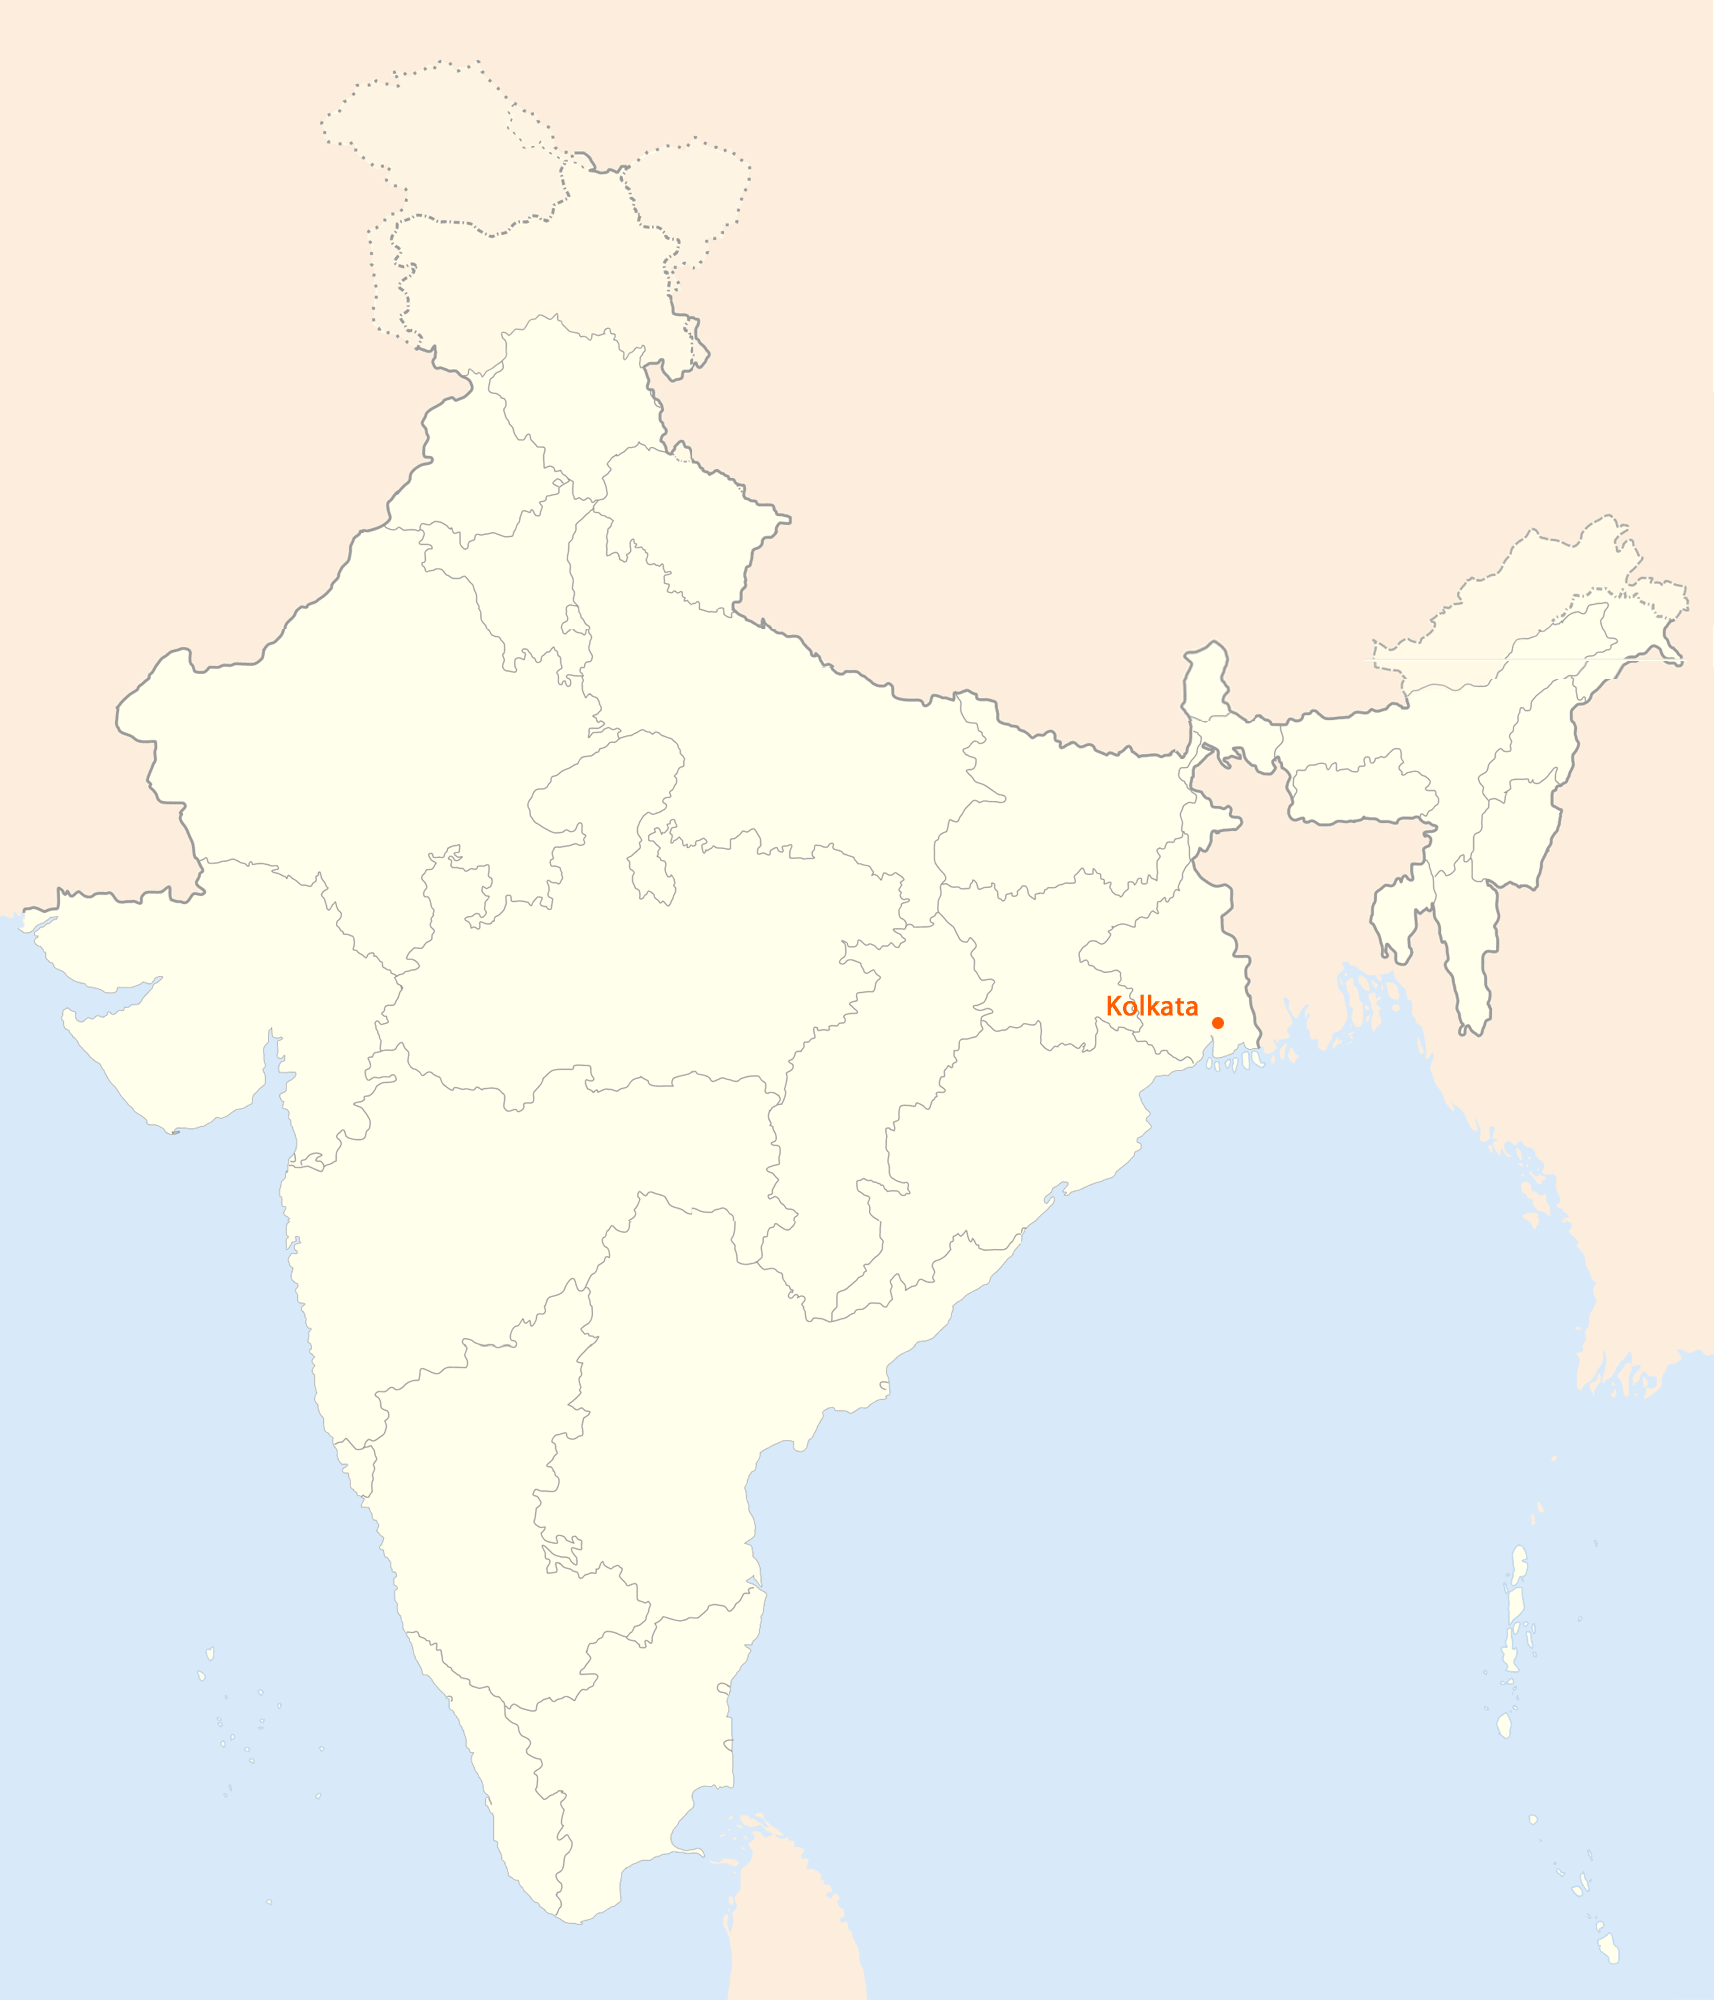 Location Map of Kolkata